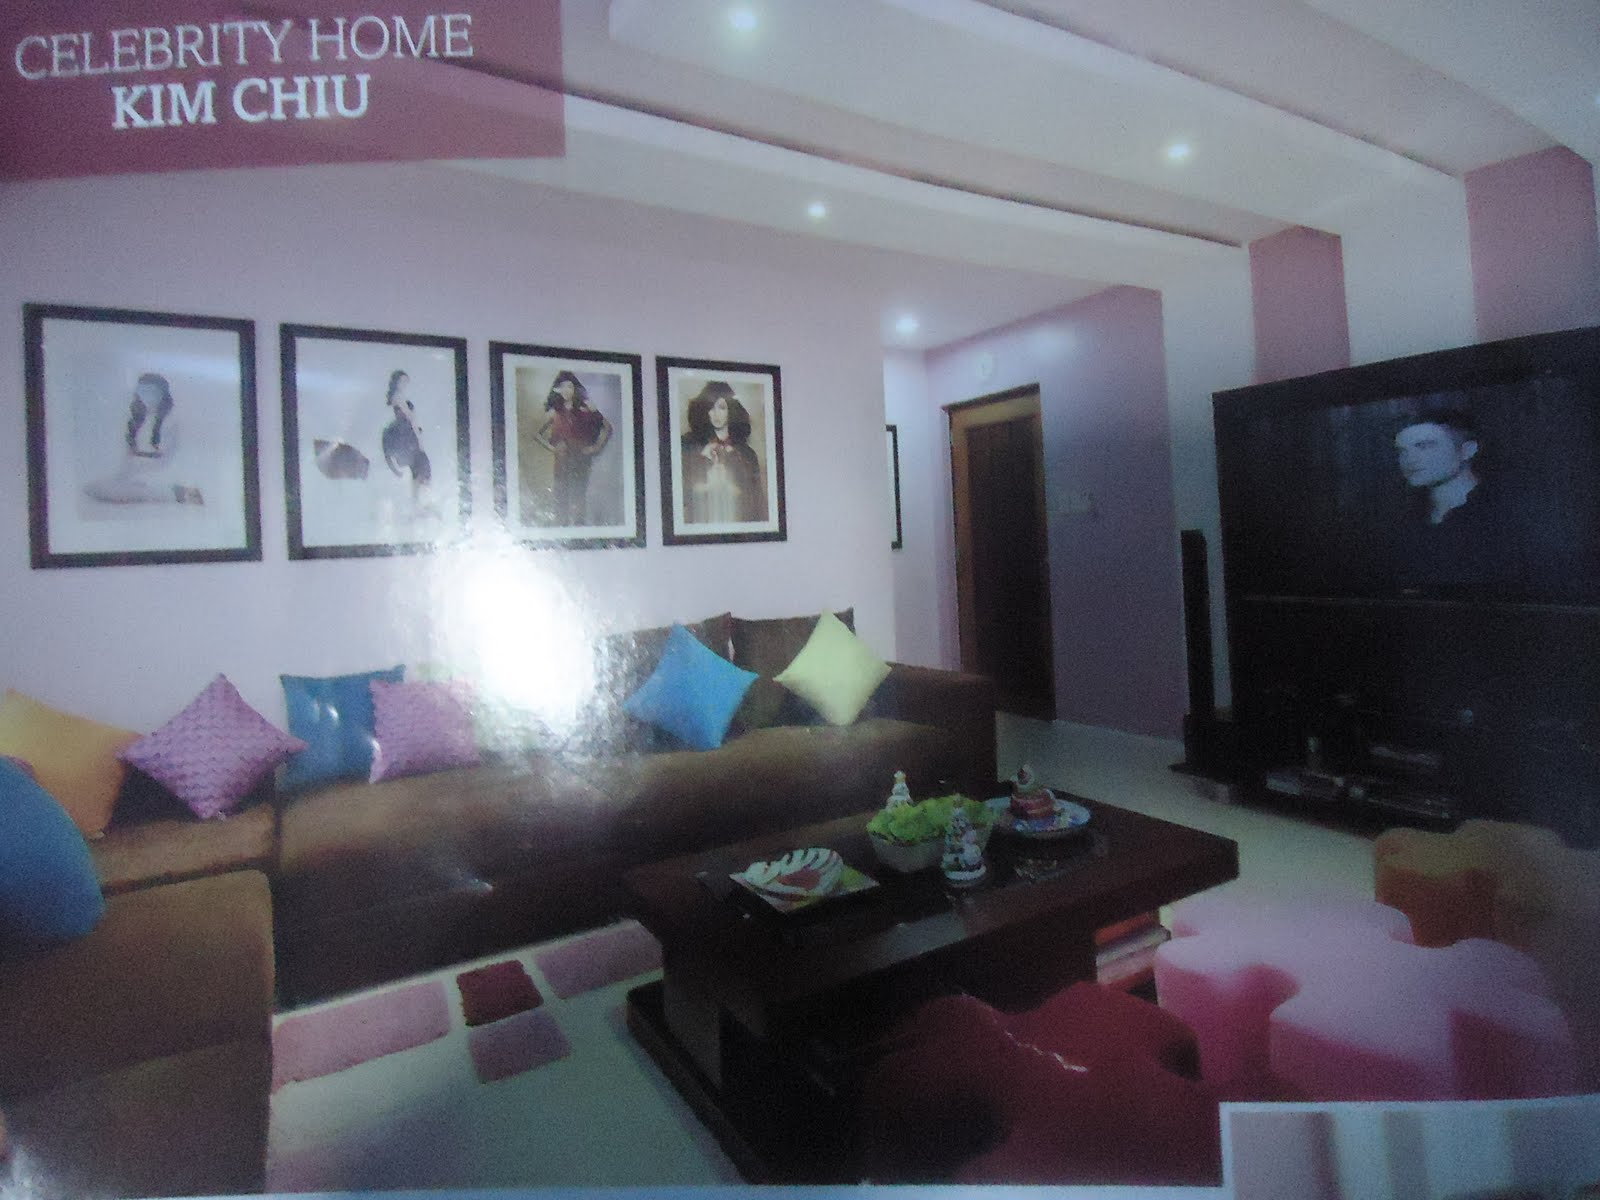 Home Sweet Home: Kim Chiu's New House Kim Chiu House